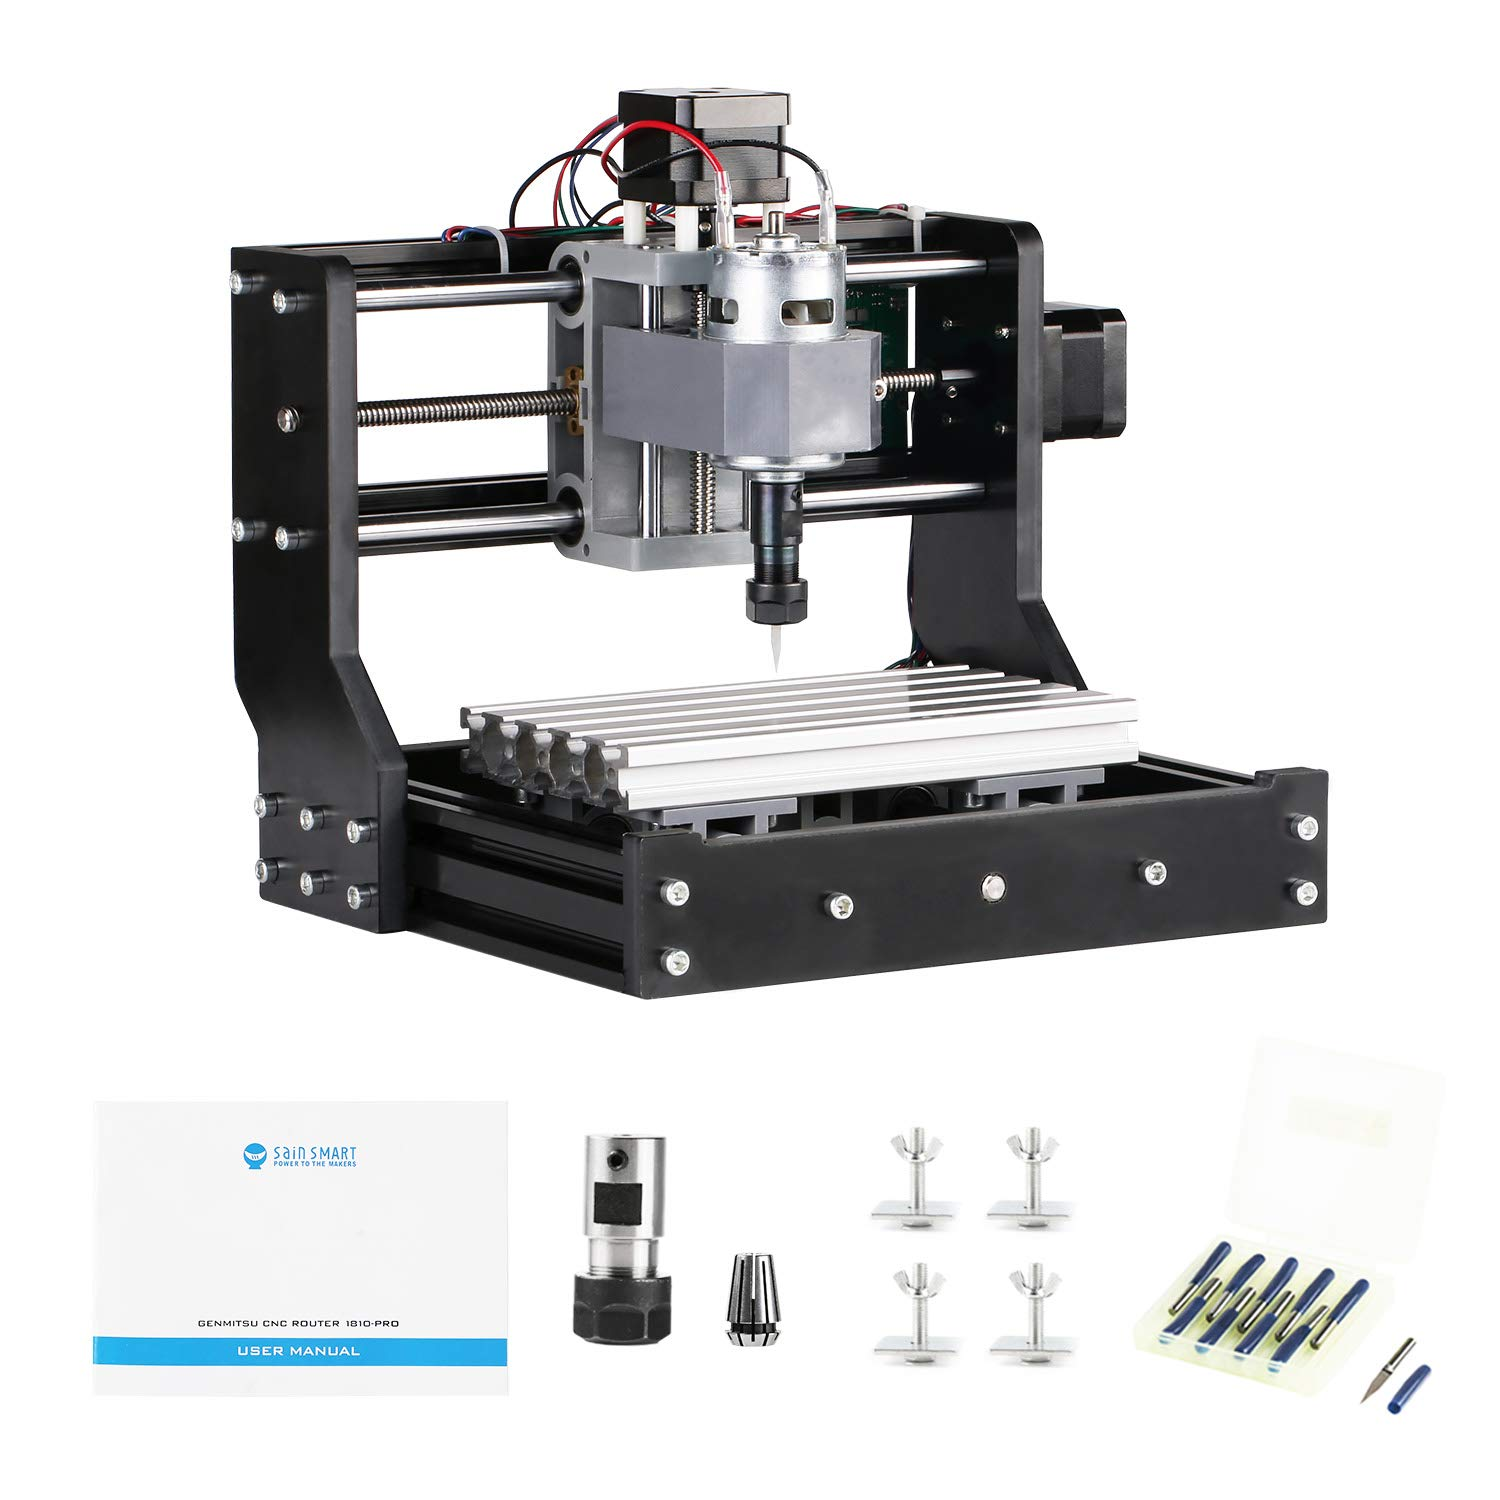 SainSmart Genmitsu CNC Router Kit 1810-PRO GRBL Control 3 Axis